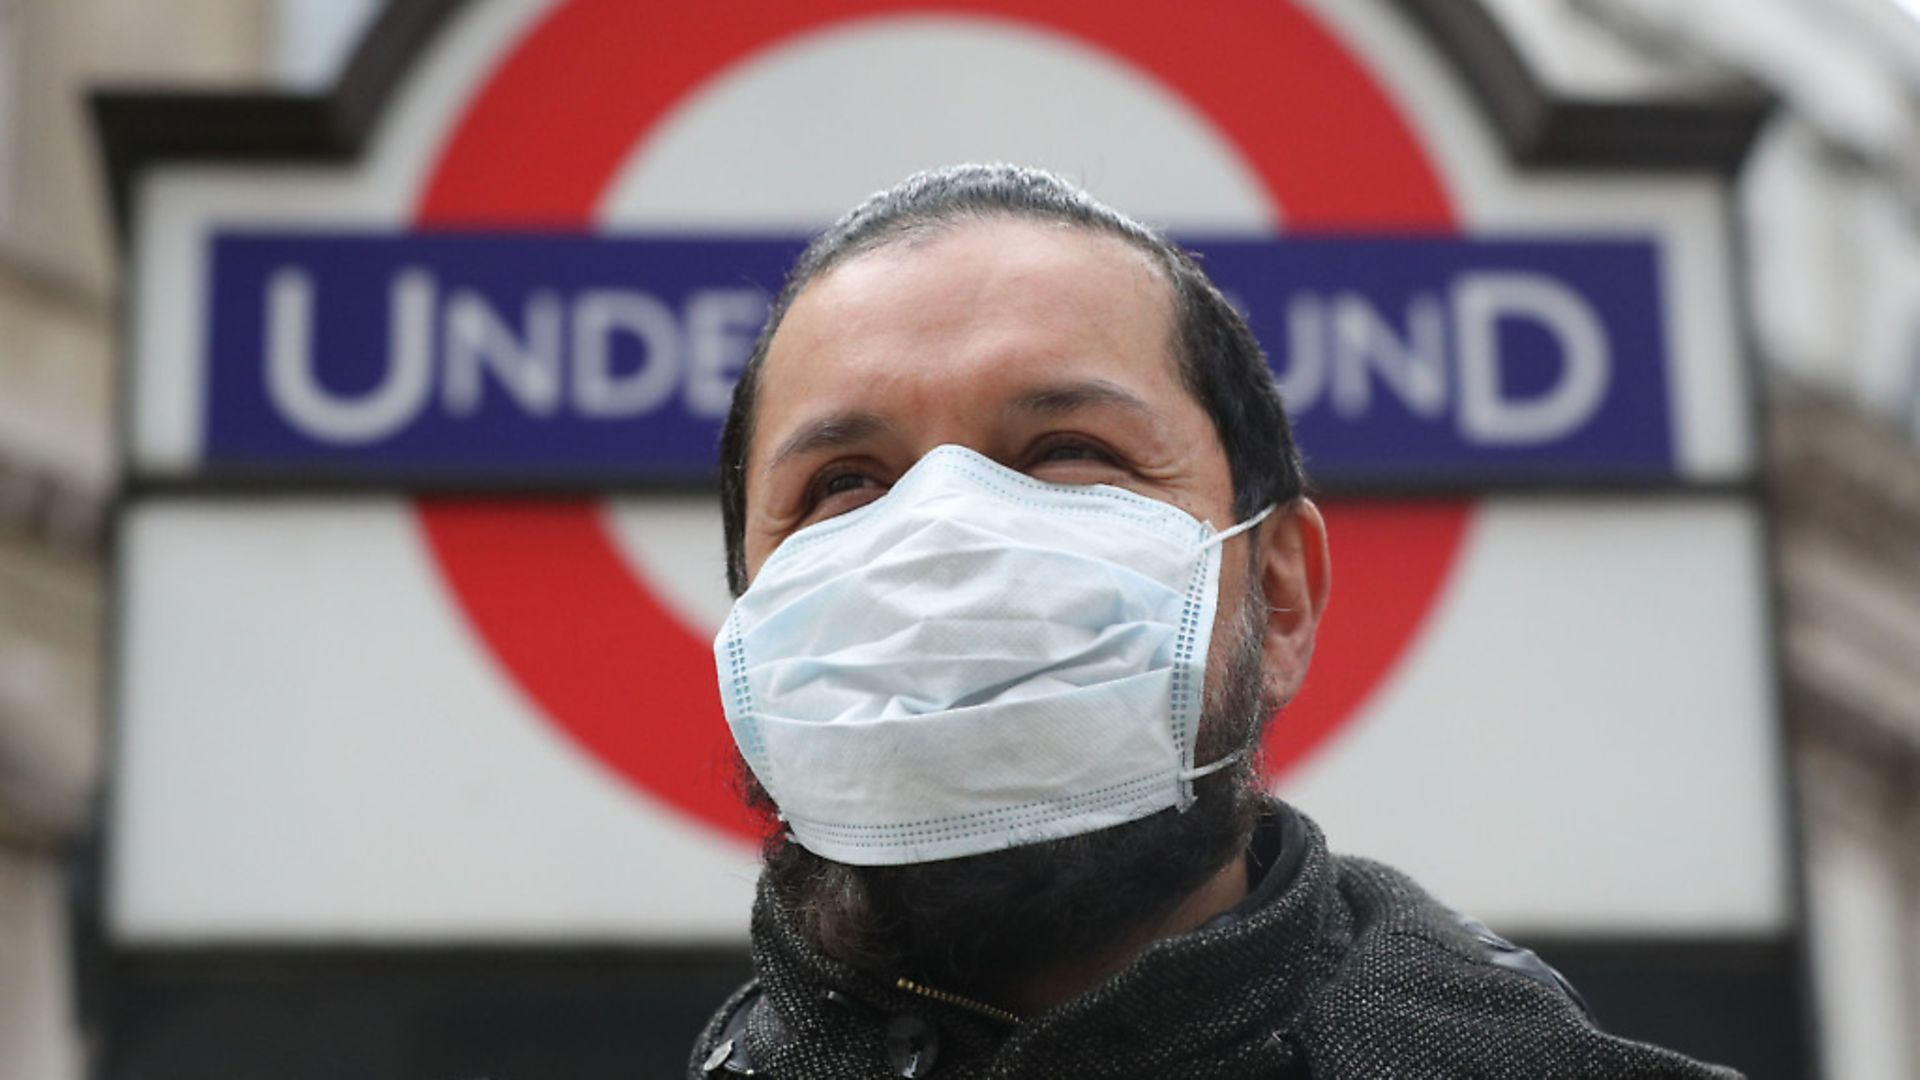 A person wearing a face mask in front of an underground sign in London. Photograph: Jonathan Brady/PA Wire. - Credit: PA